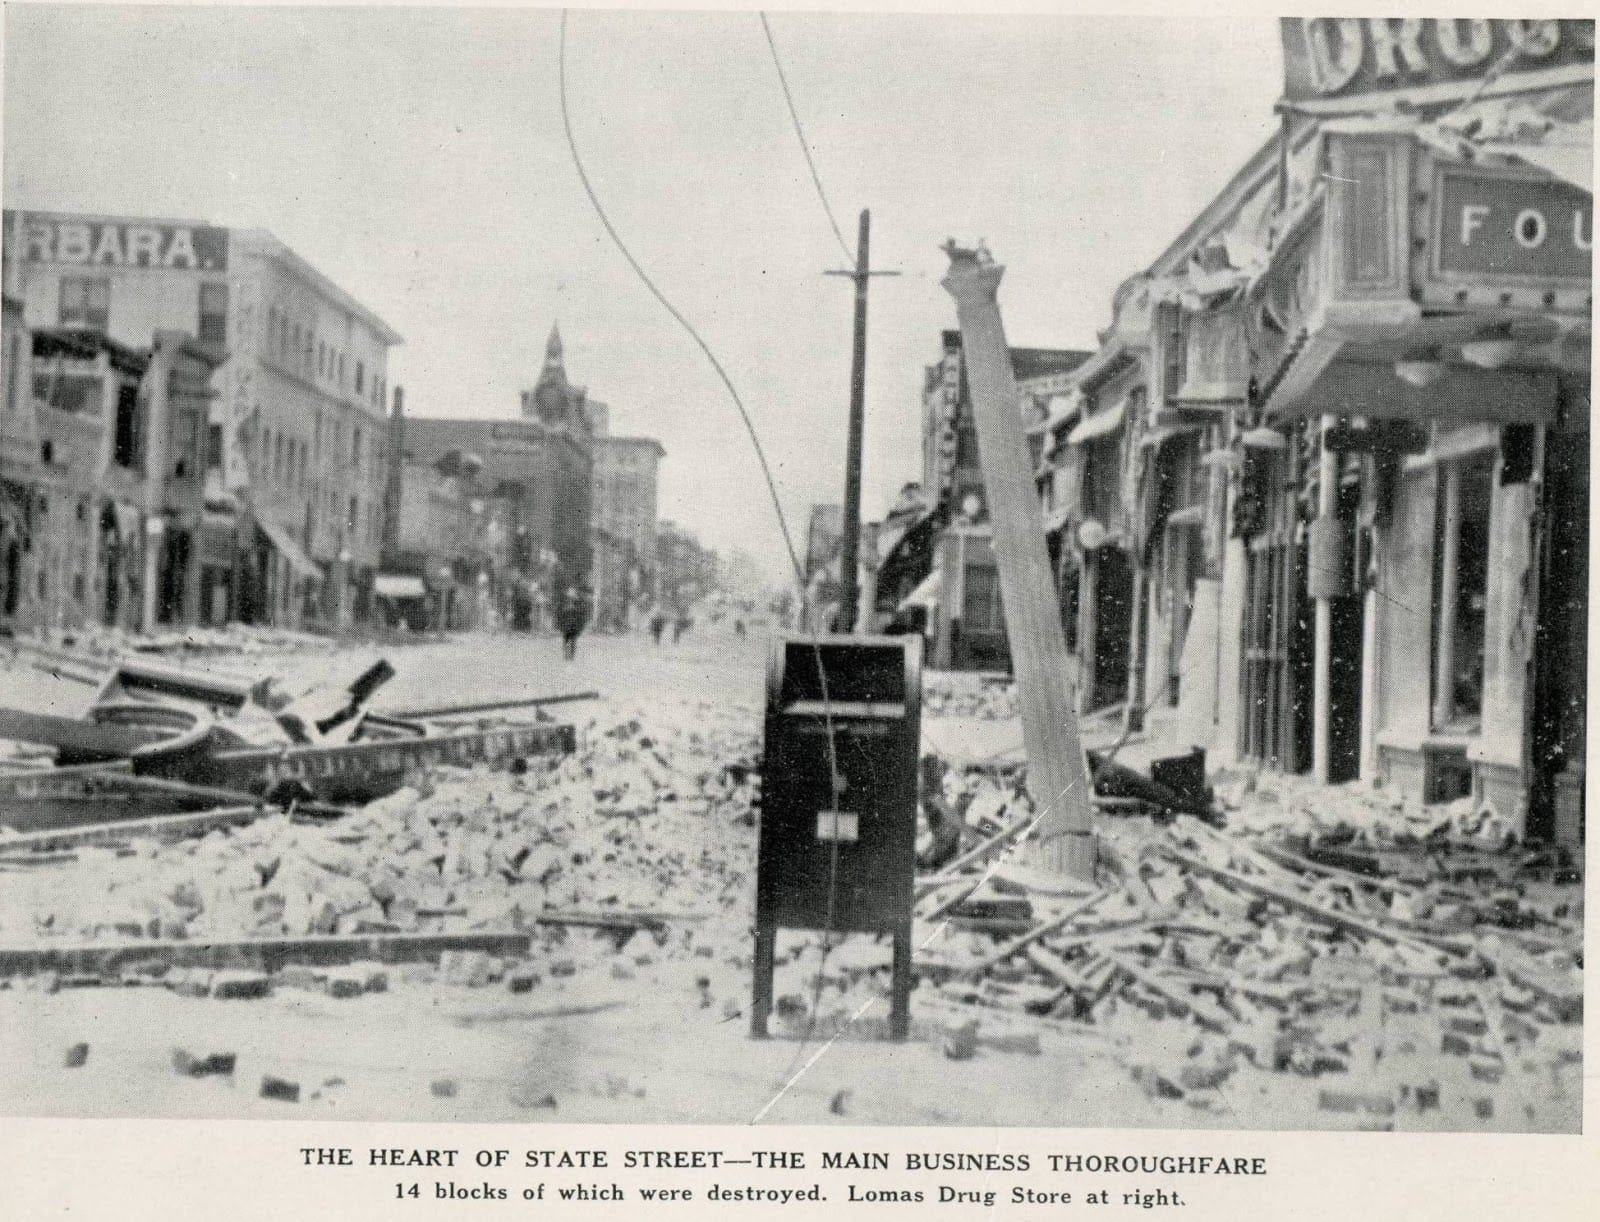 Heart Of State Street, June 29, 1925